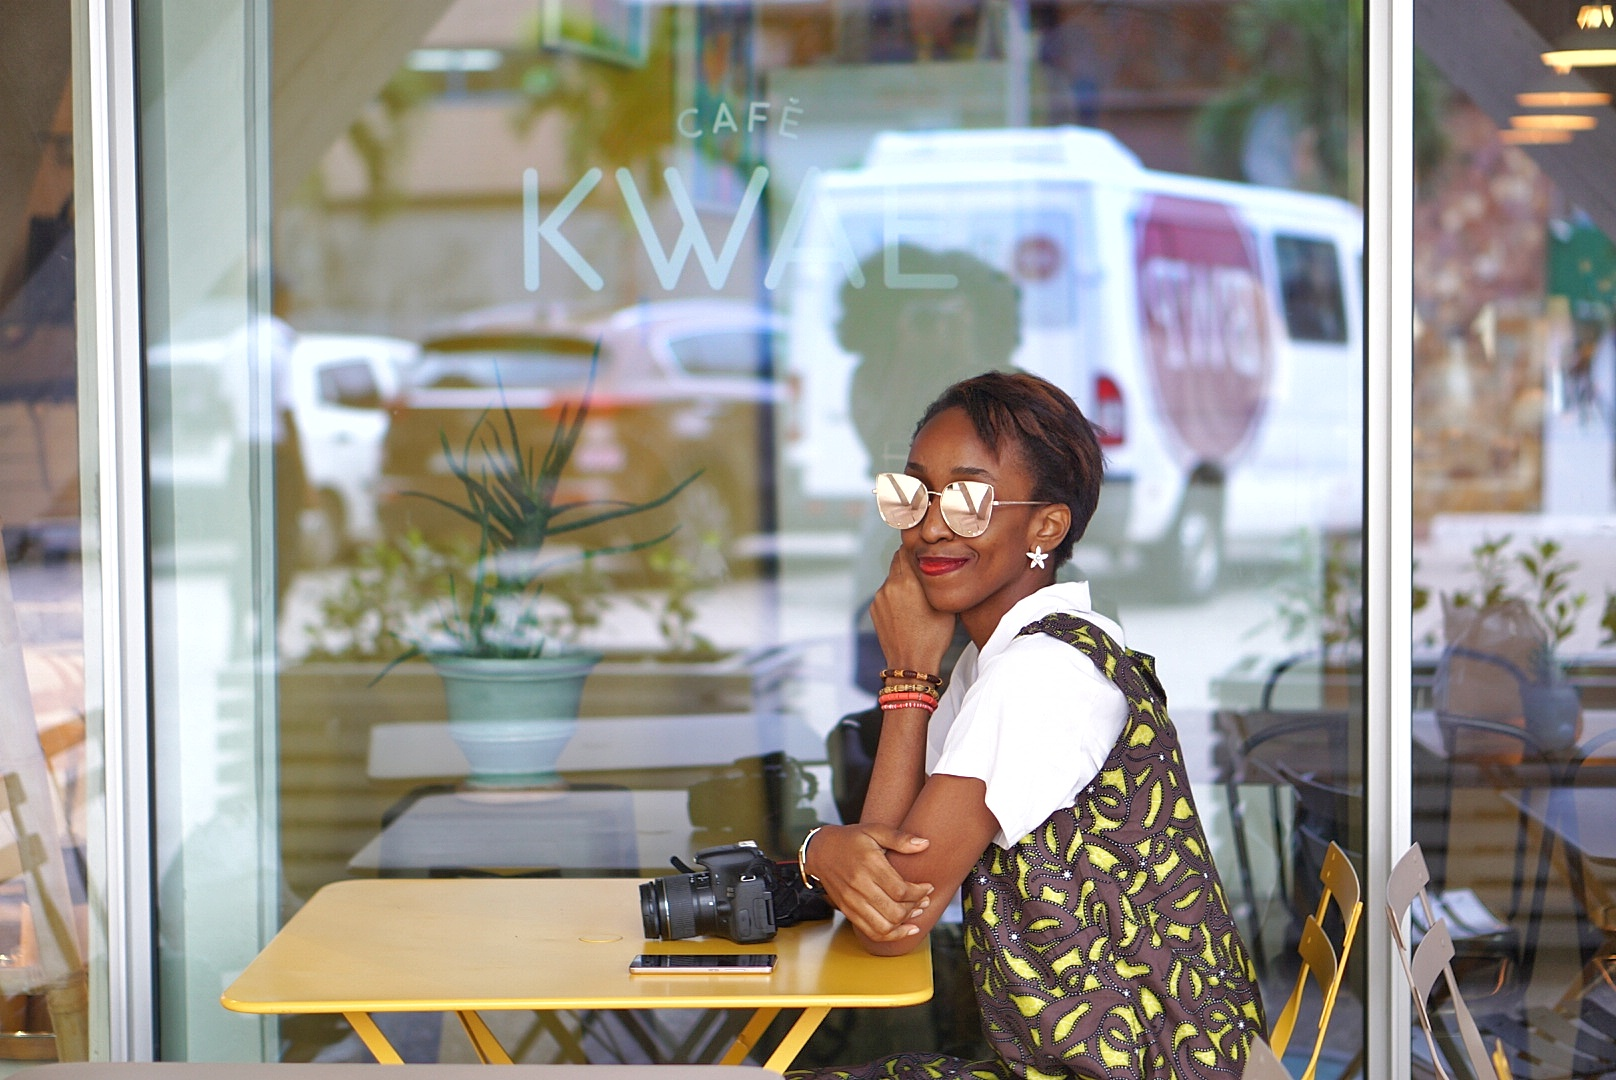 Cassie Daves at cafe kwae in Accra